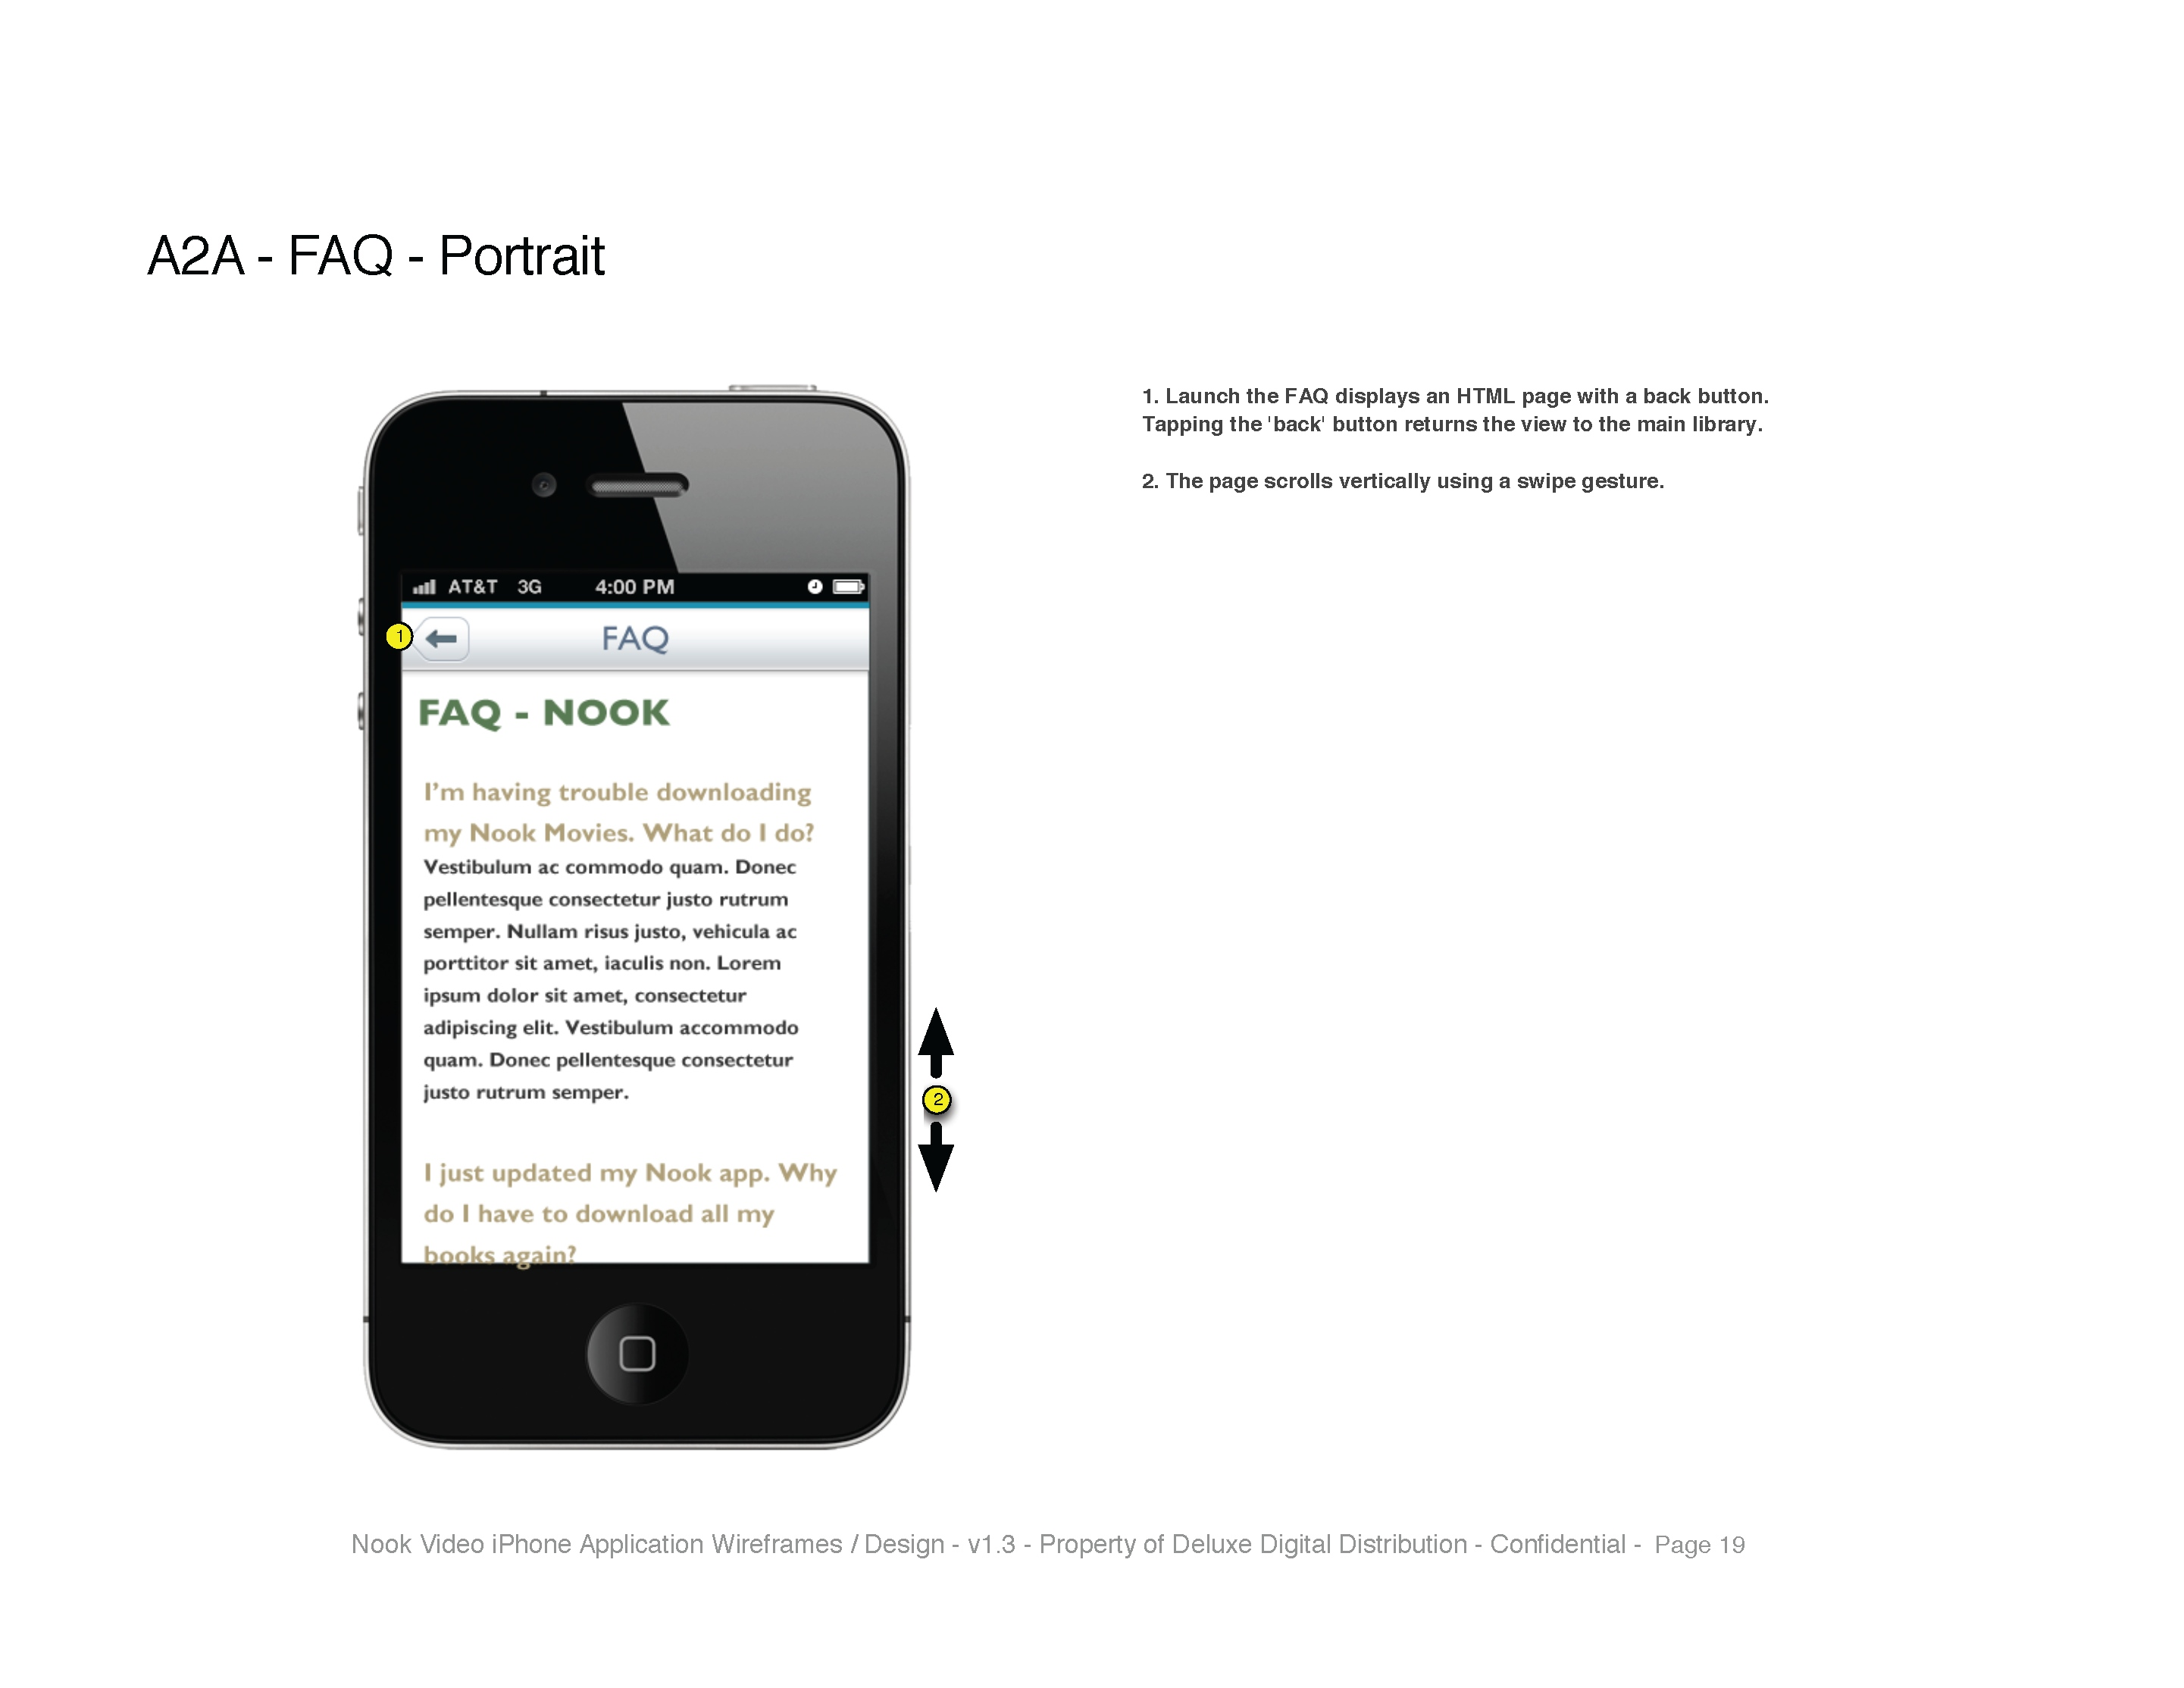 B&N Nook Video iOS Apps » Cloudesign Inc » We are a full